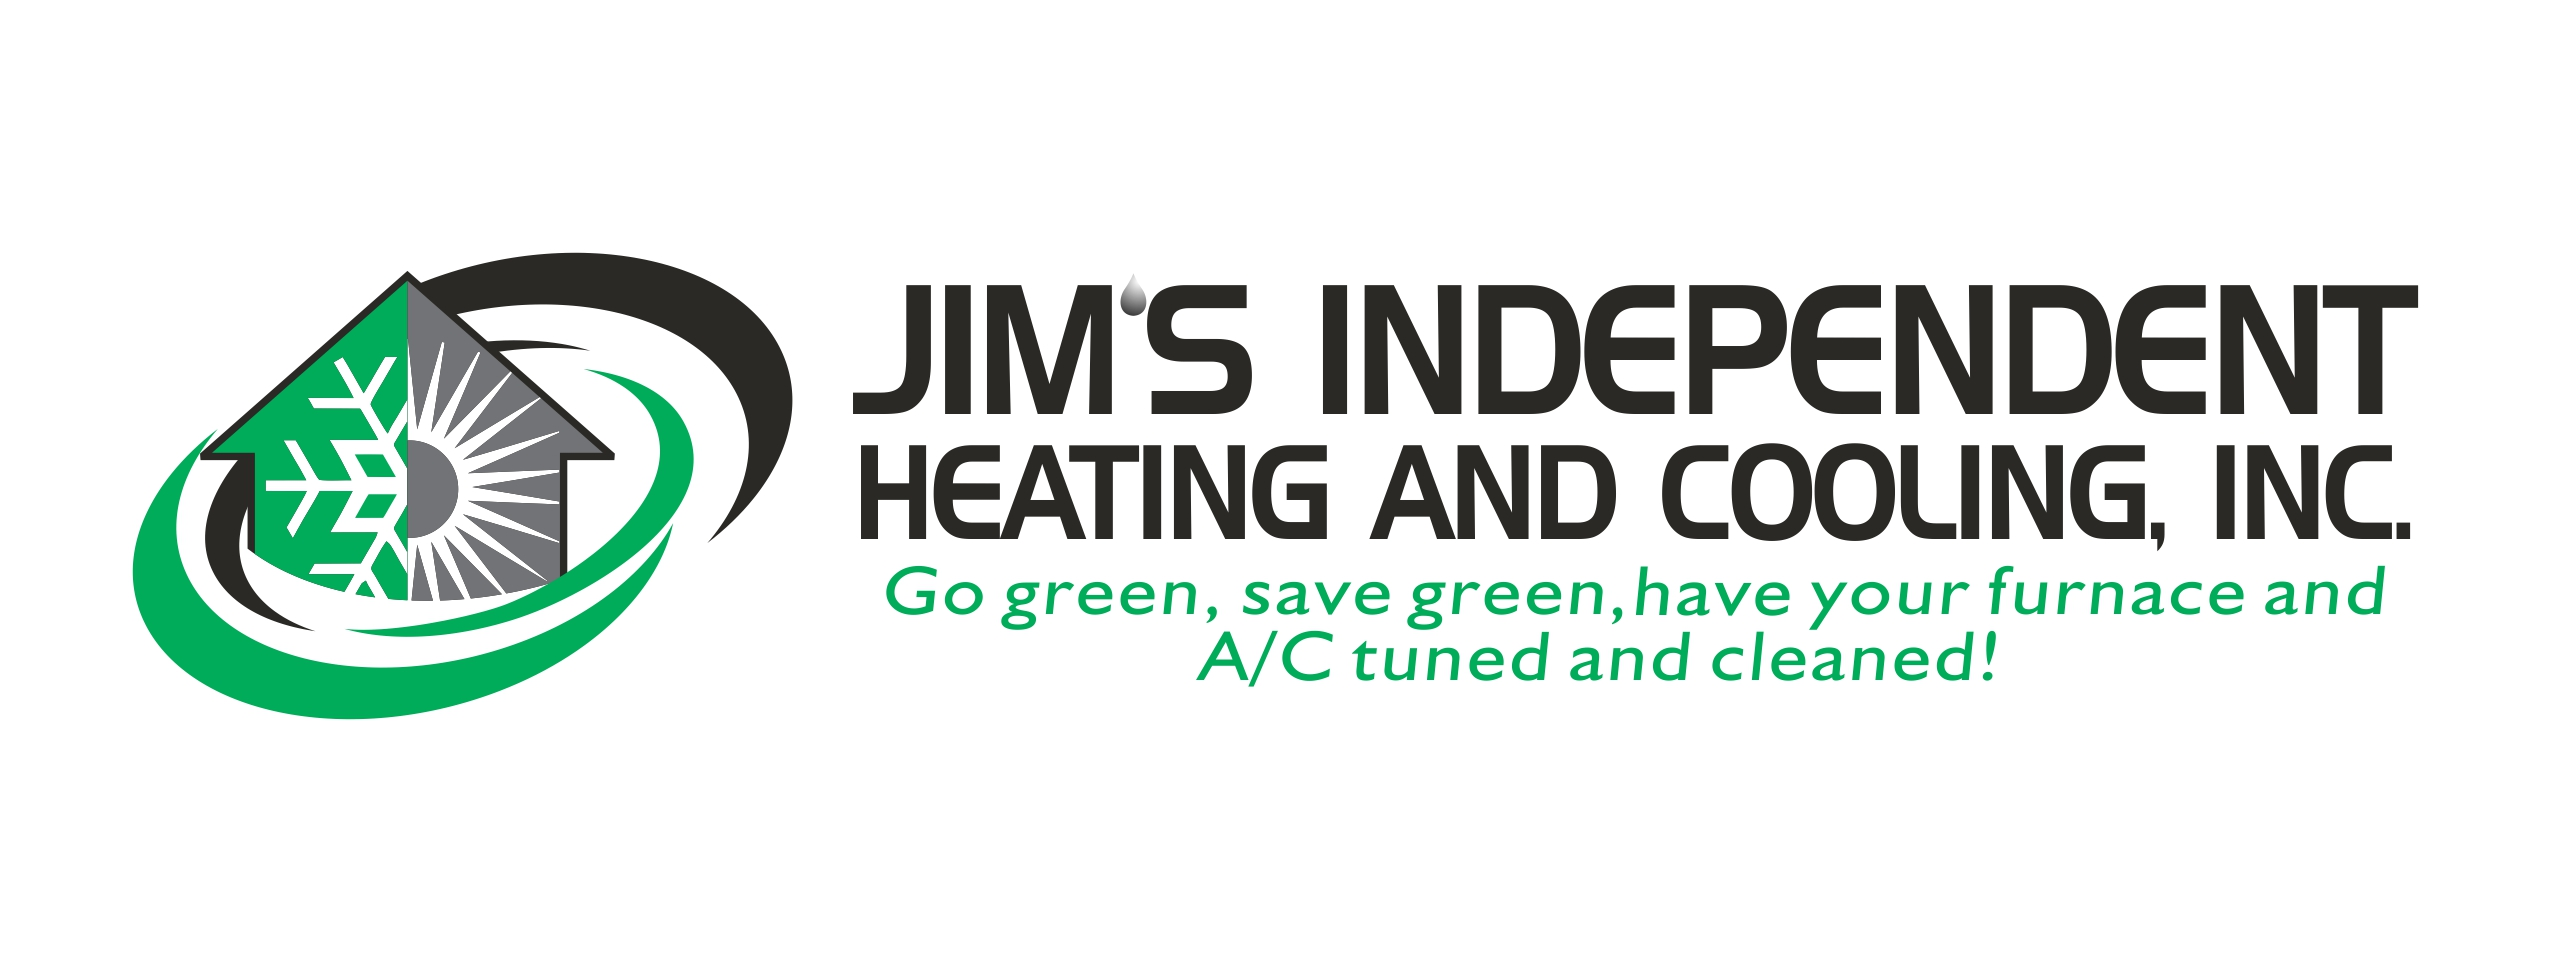 Jim's Independent Heating and Cooling